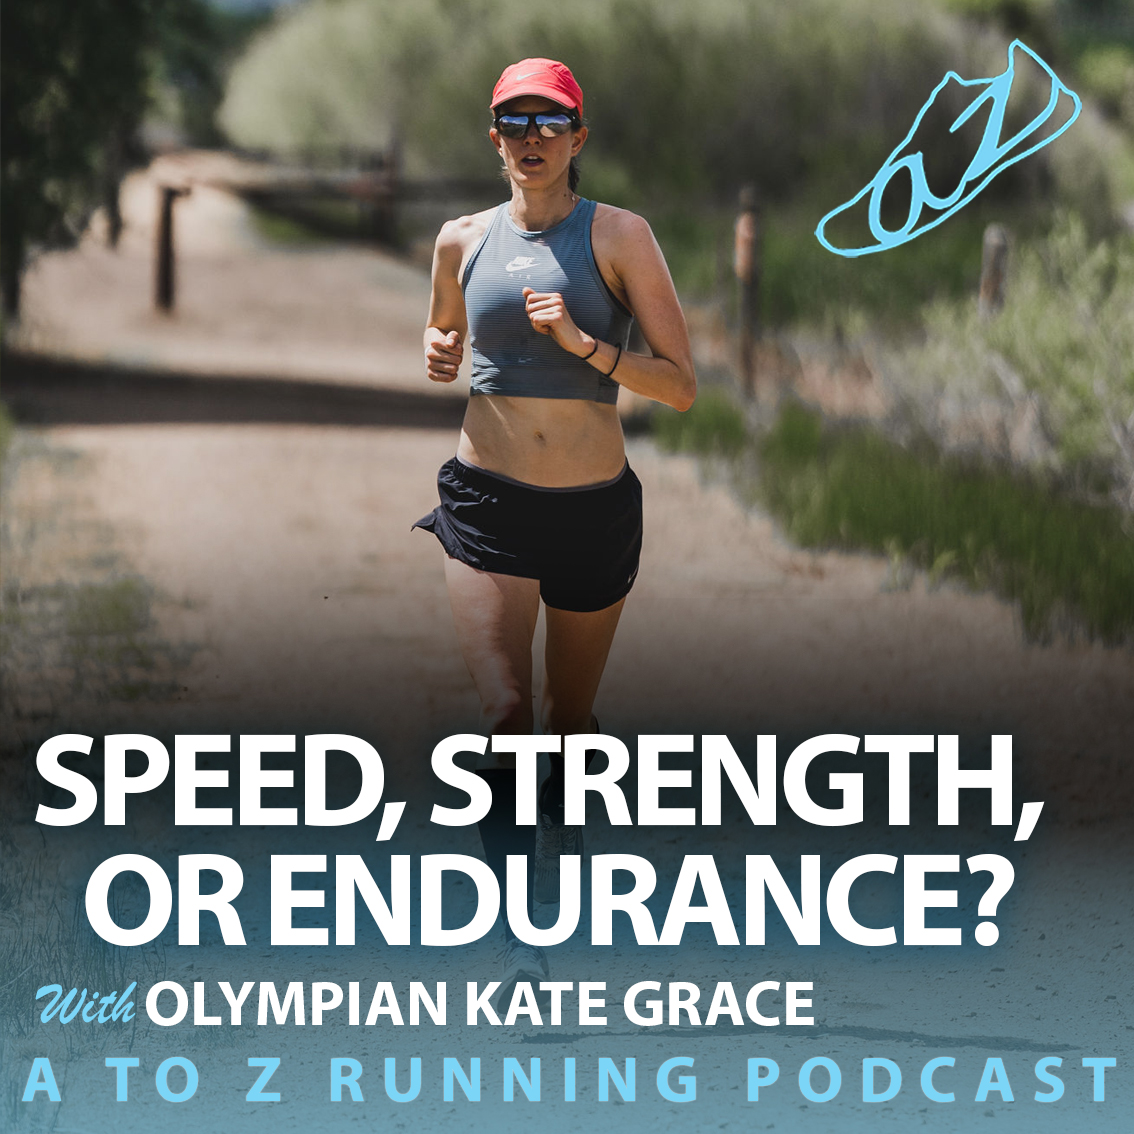 Kate Grace with the A to Z Running Podcast